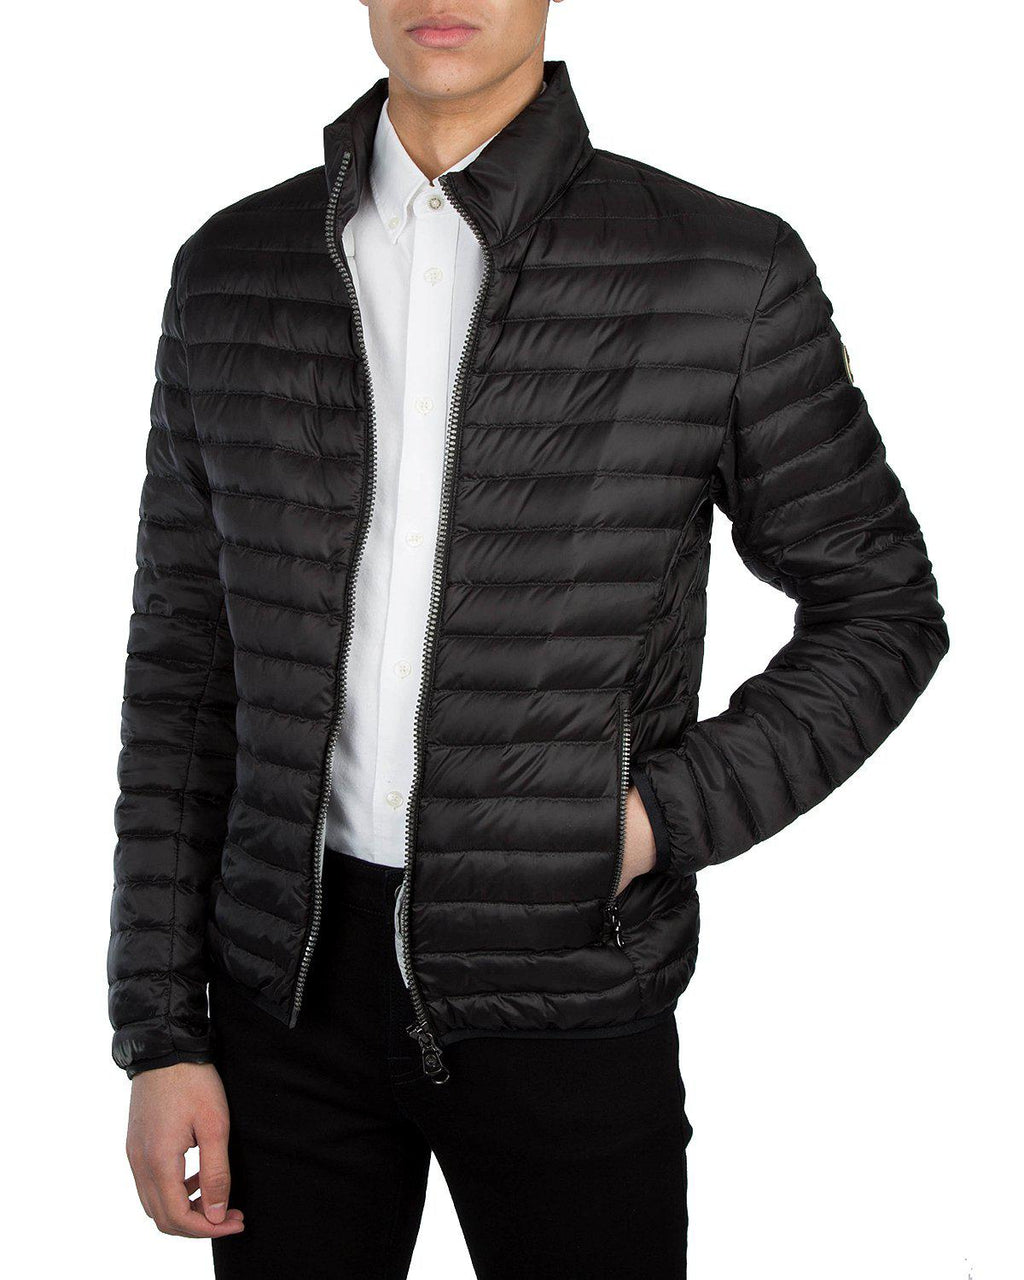 COLMAR Light Mens Down Jacket-Jackets-Colmar-s-Black-Classic fashion CF13